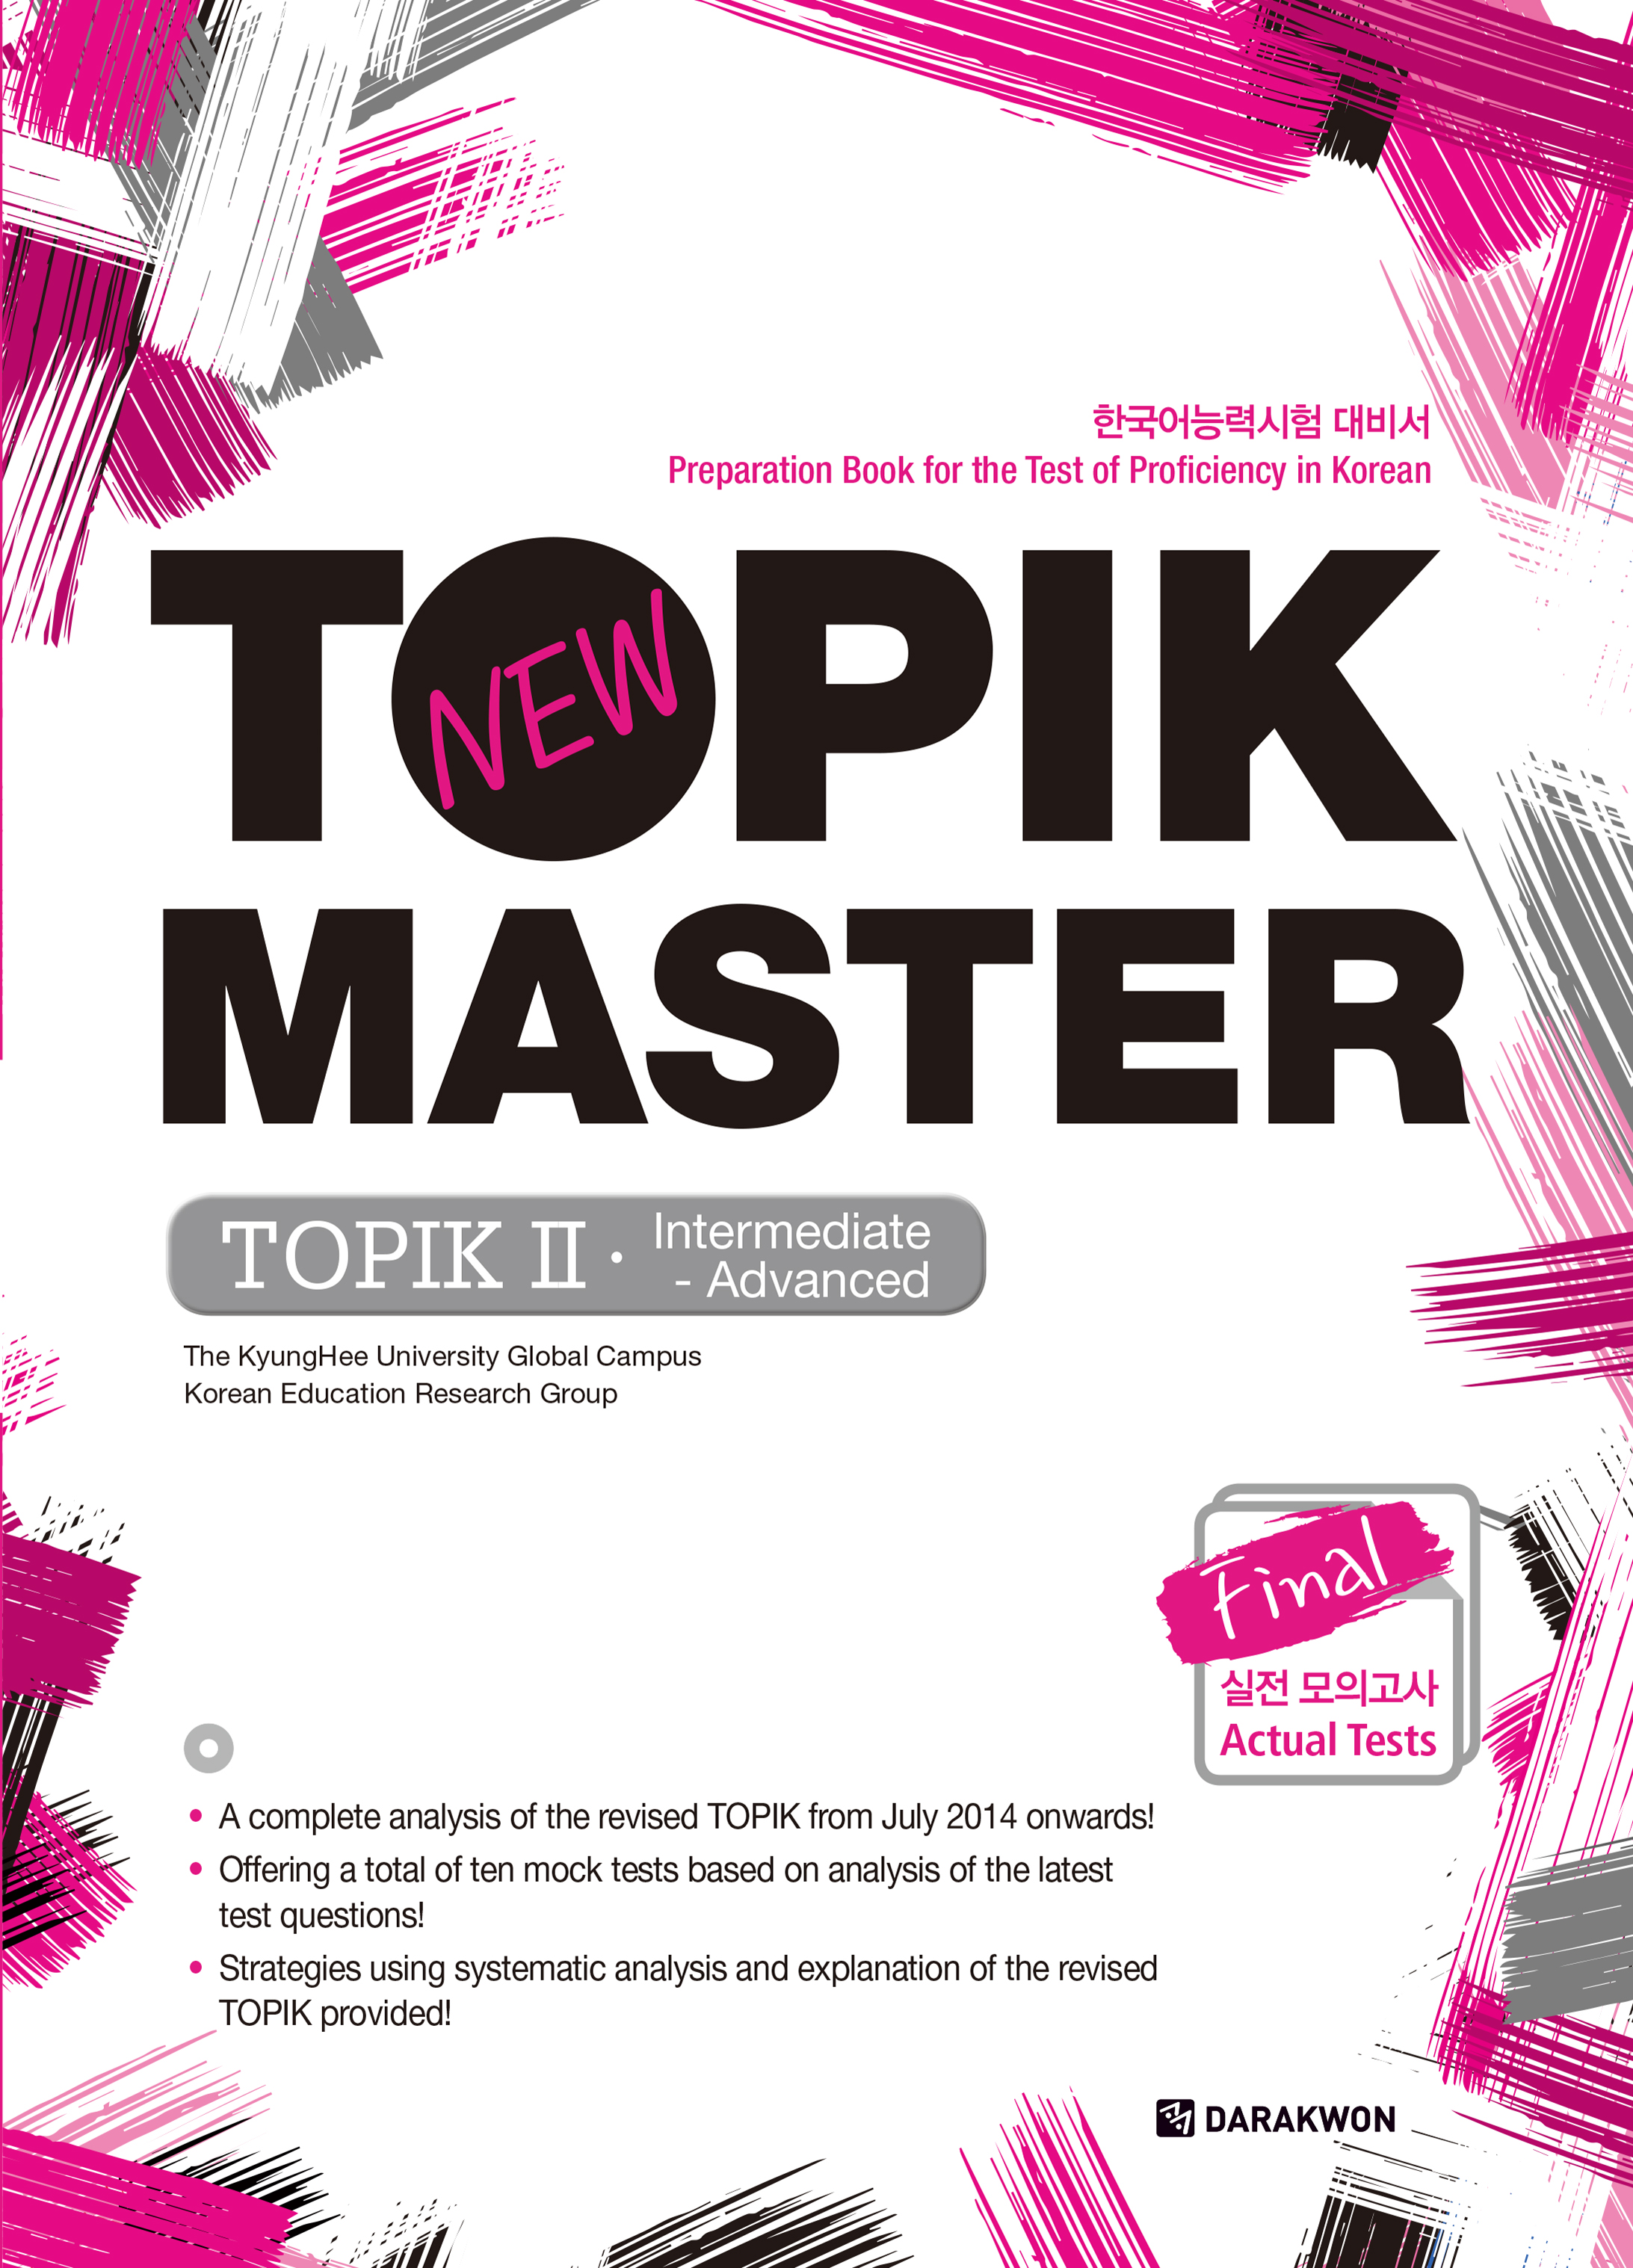 [New TOPIK MASTER] (영어판) New TOPIK MASTER Final 실전 모의고사 TOPIK Ⅱ Intermediate-Advanced